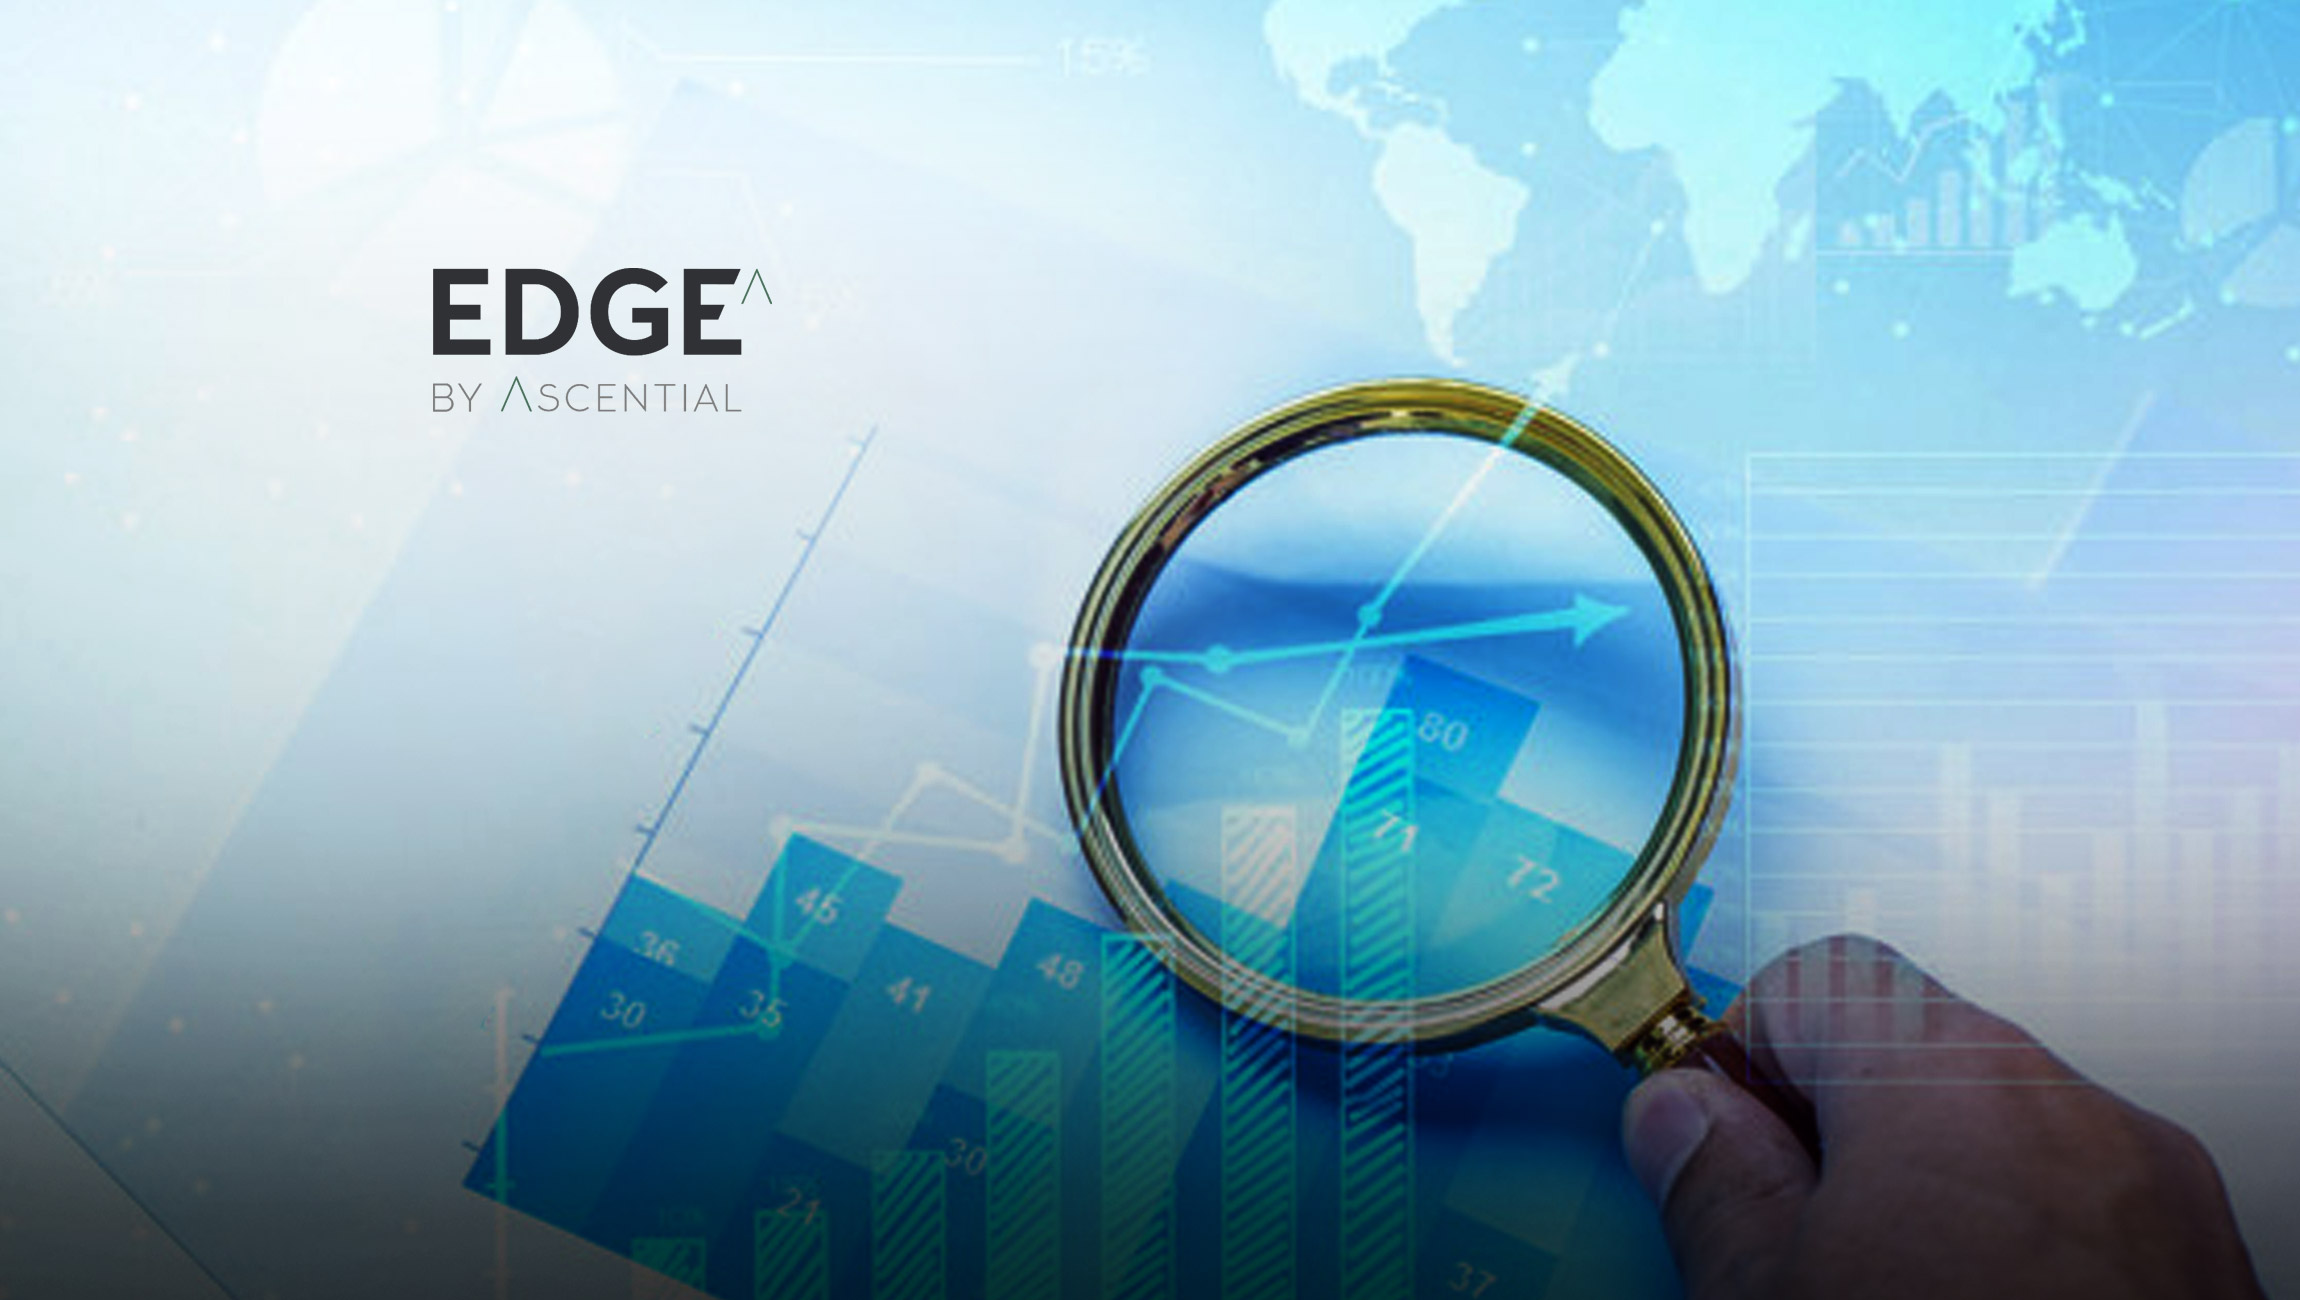 Edge by Ascential Launches Market Share 2.0